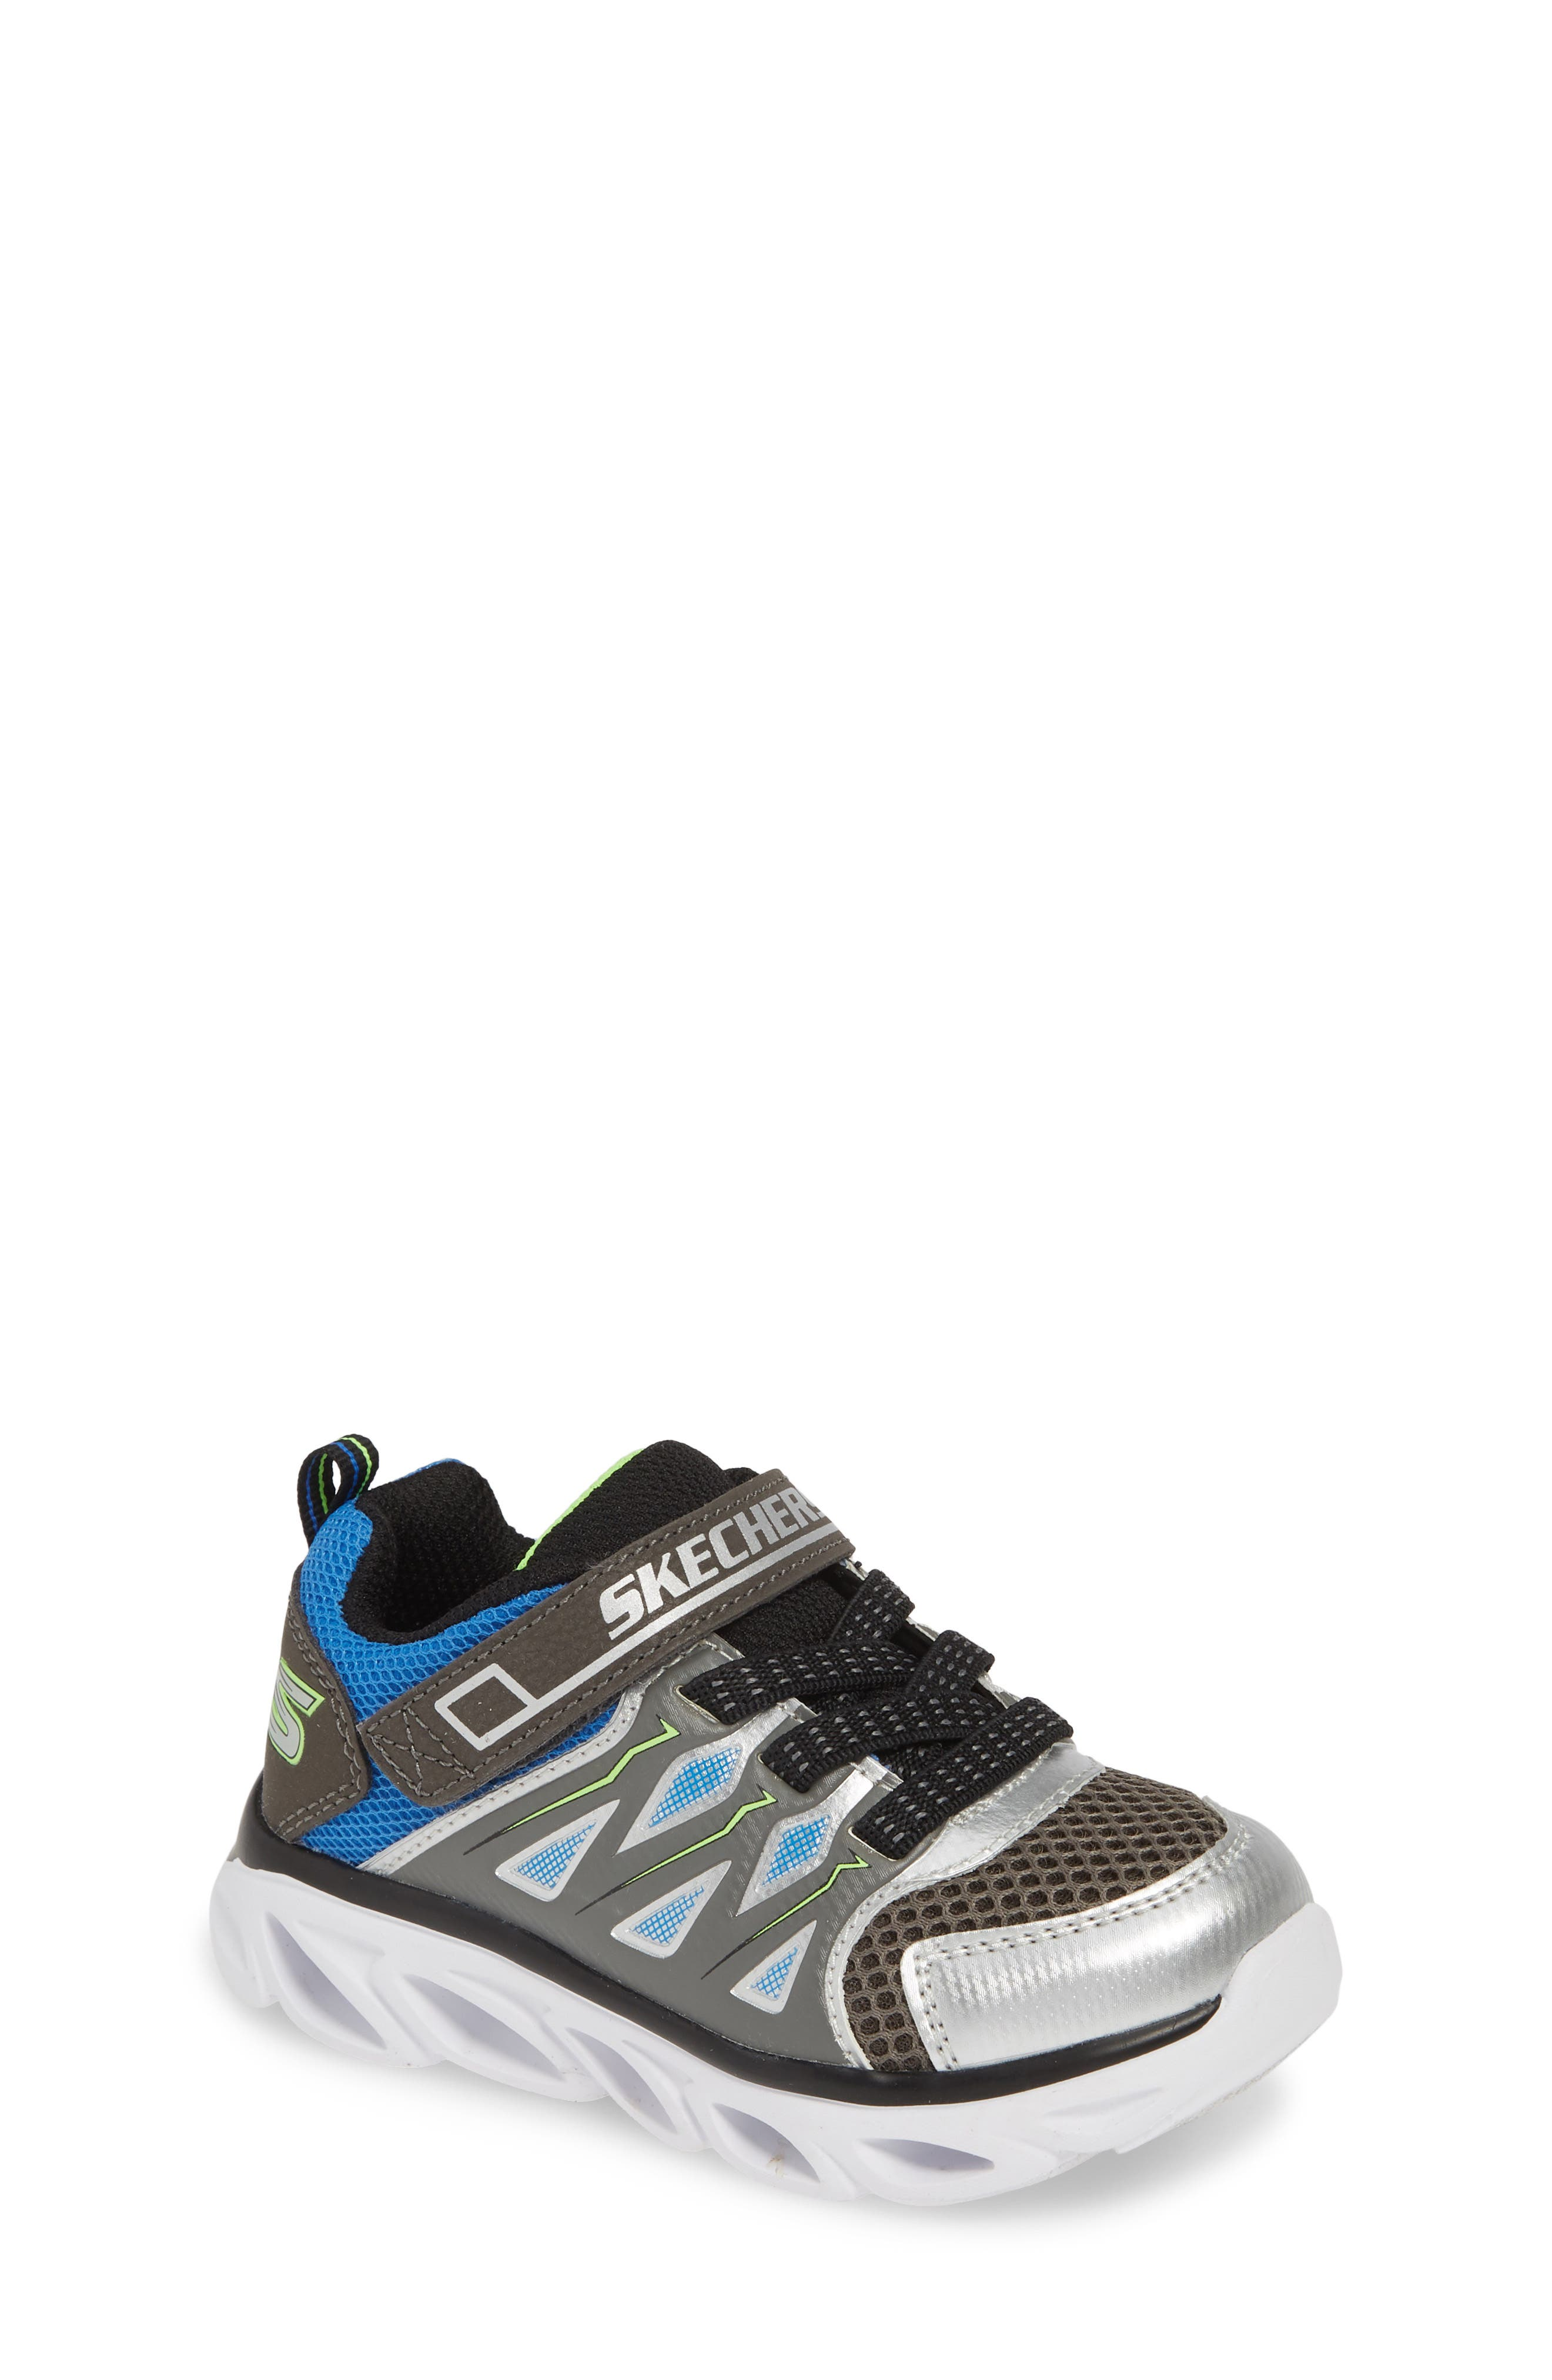 Hypno-Flash 3.0 Light-Up Sneakers, Main, color, SILVER/ BLUE